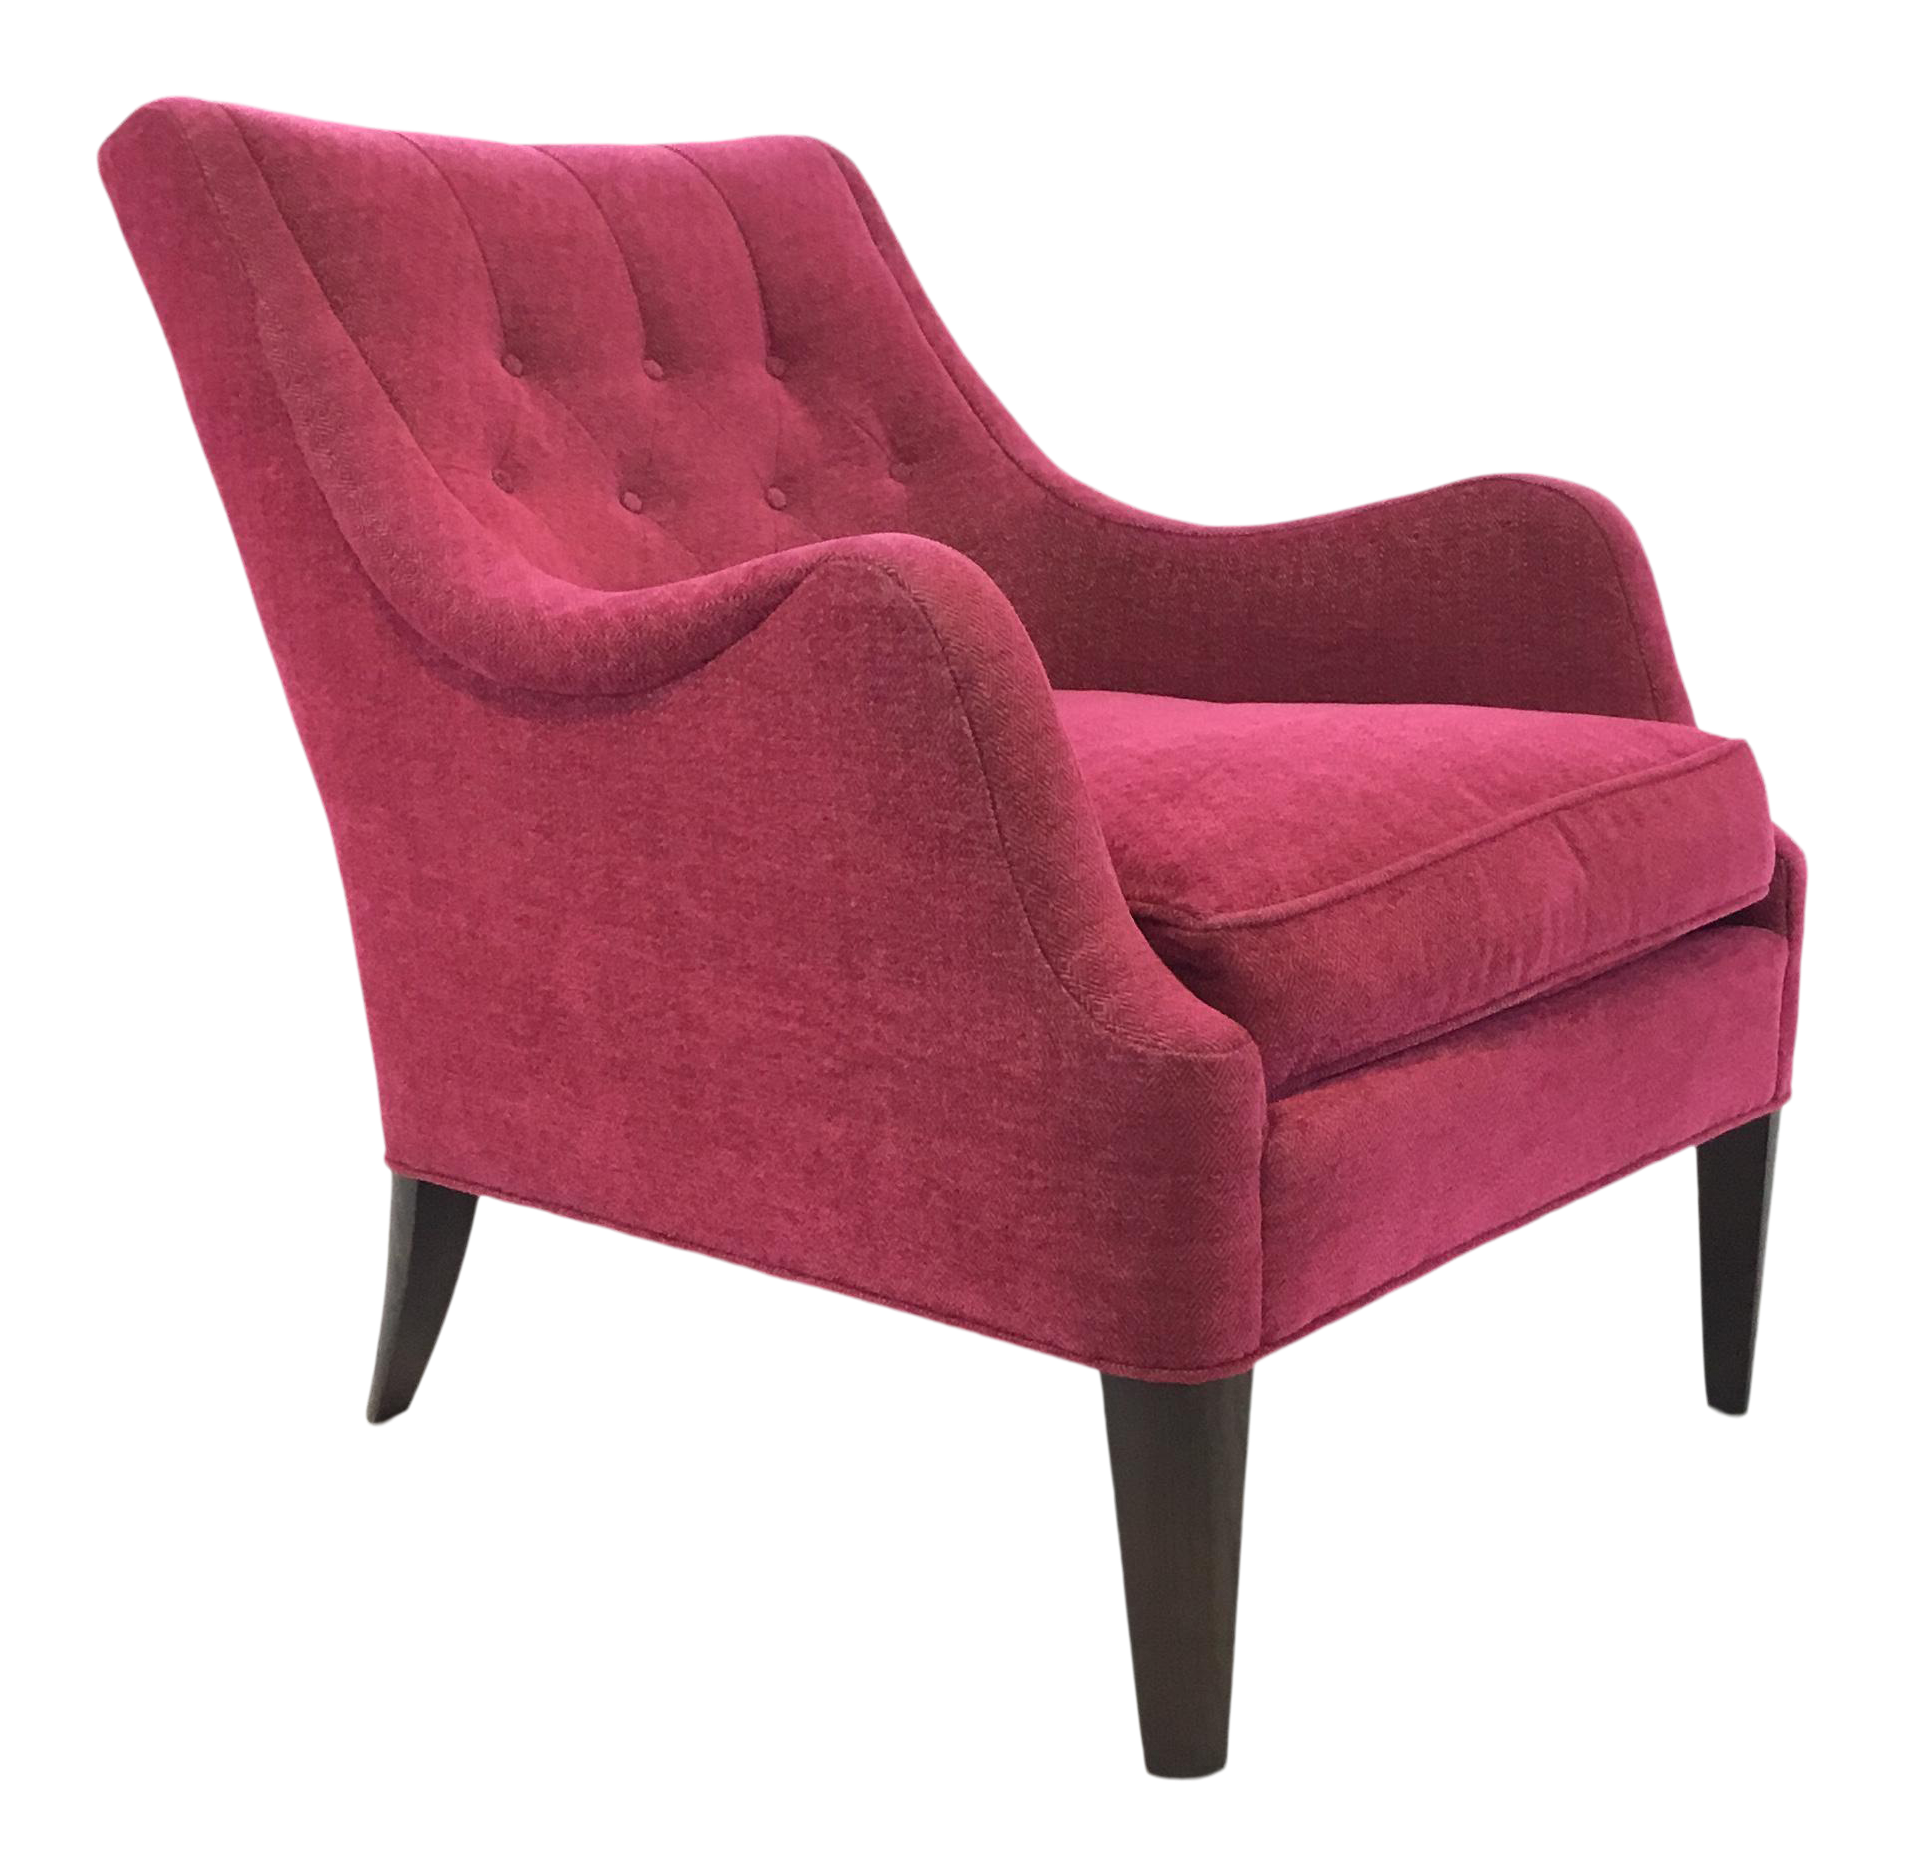 Hickory Chair Modern Tufted Pink Chennile Lounge Chair